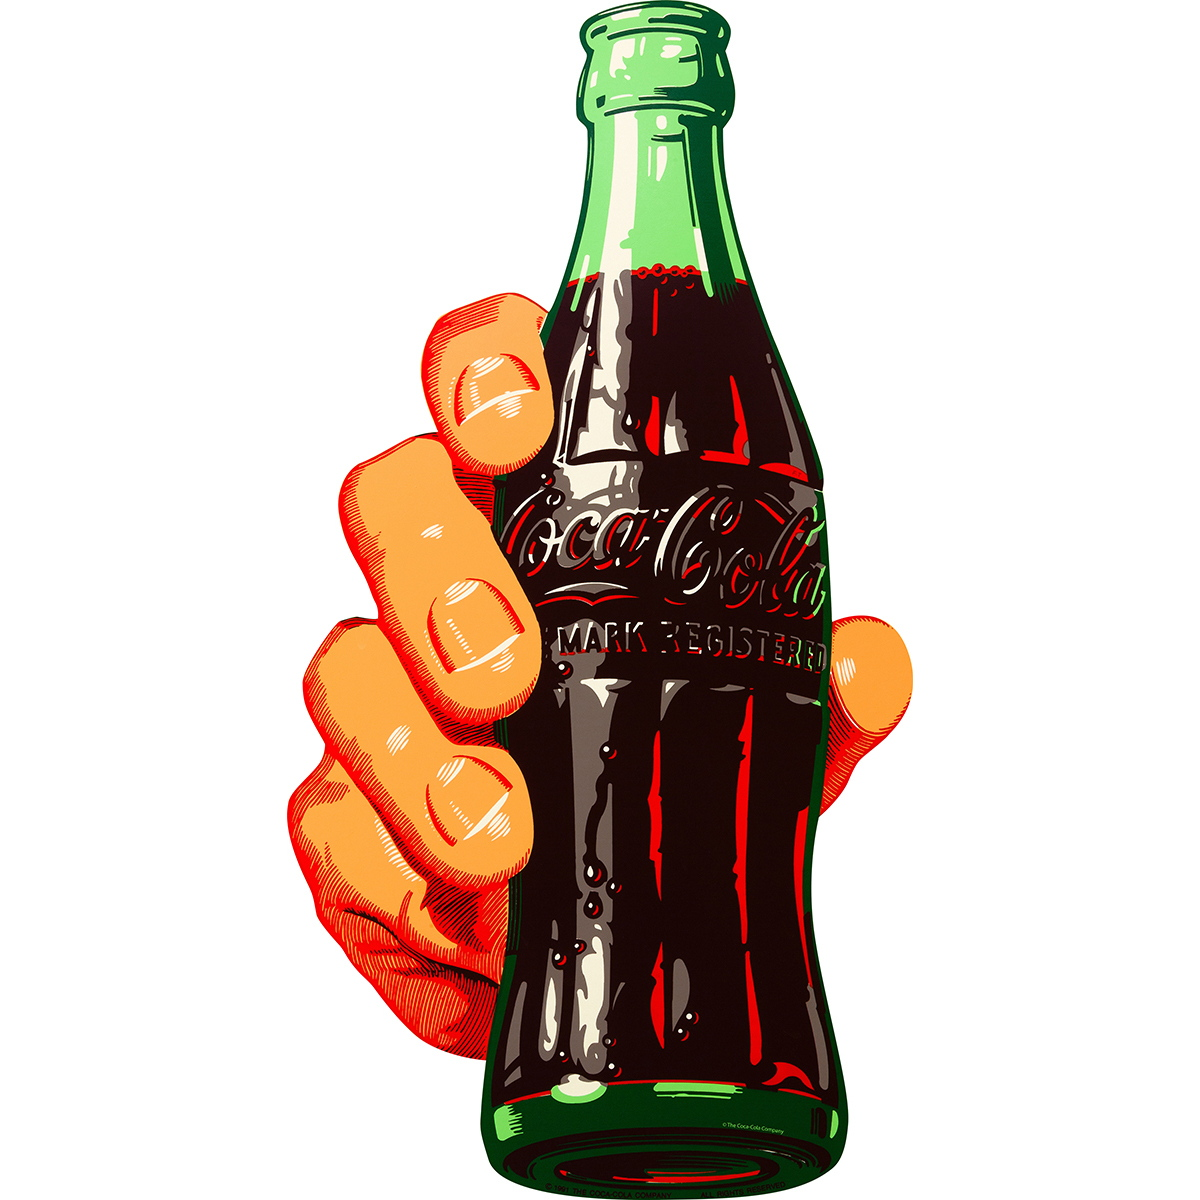 Coca Cola Soda Bottle In Hand Decal At Retro Planet